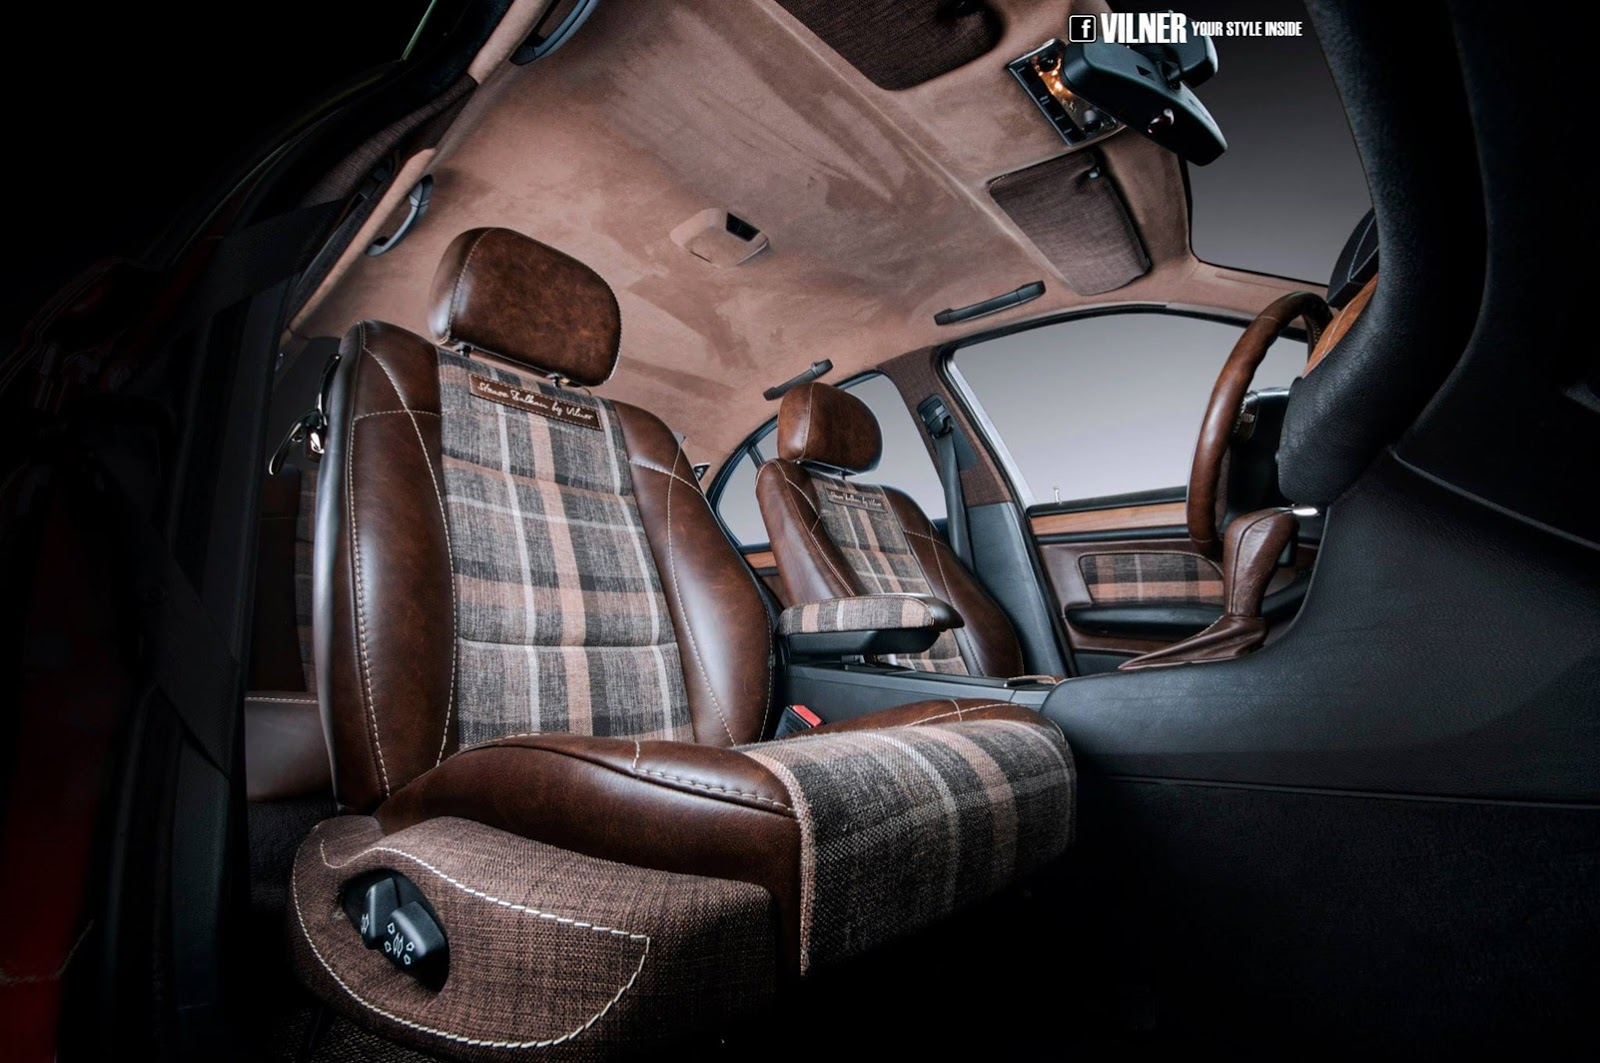 Bmw E46 3 Series Gets Hipster Interior From Vilner Autoevolution